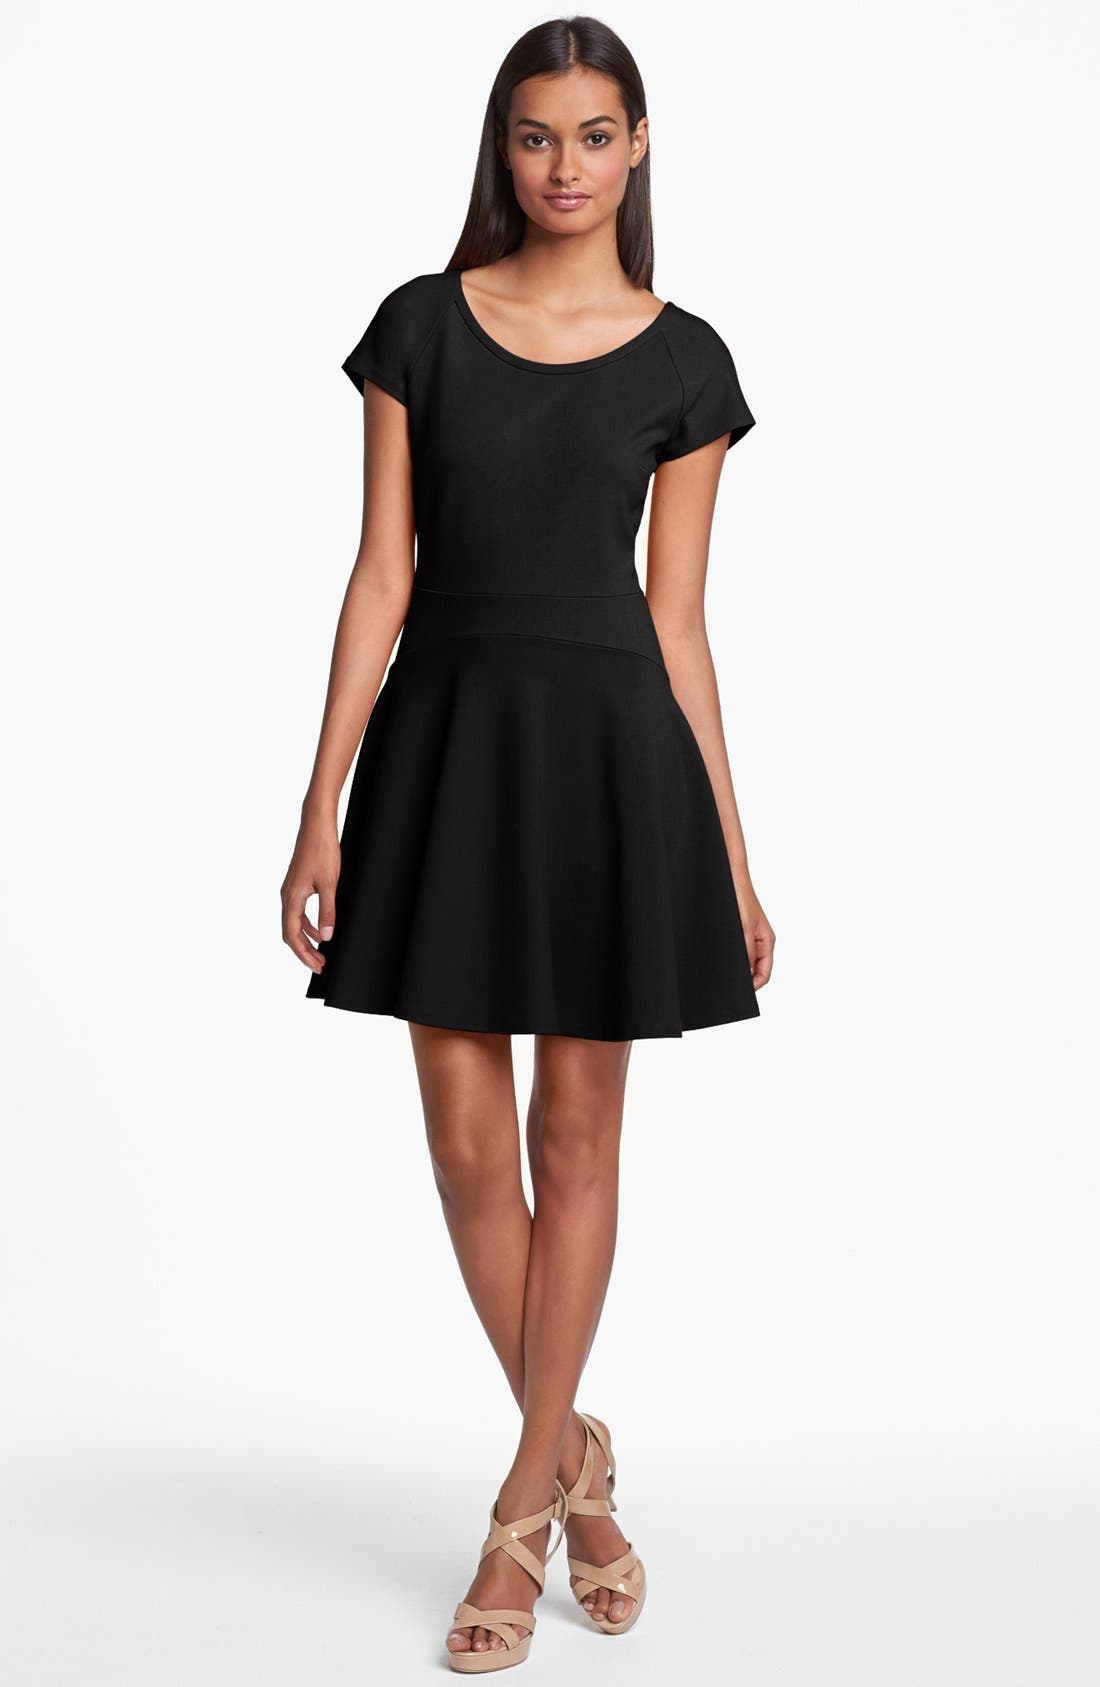 Alternate Image 1 Selected - Diane von Furstenberg 'Delyse' Stretch Fit & Flare Dress